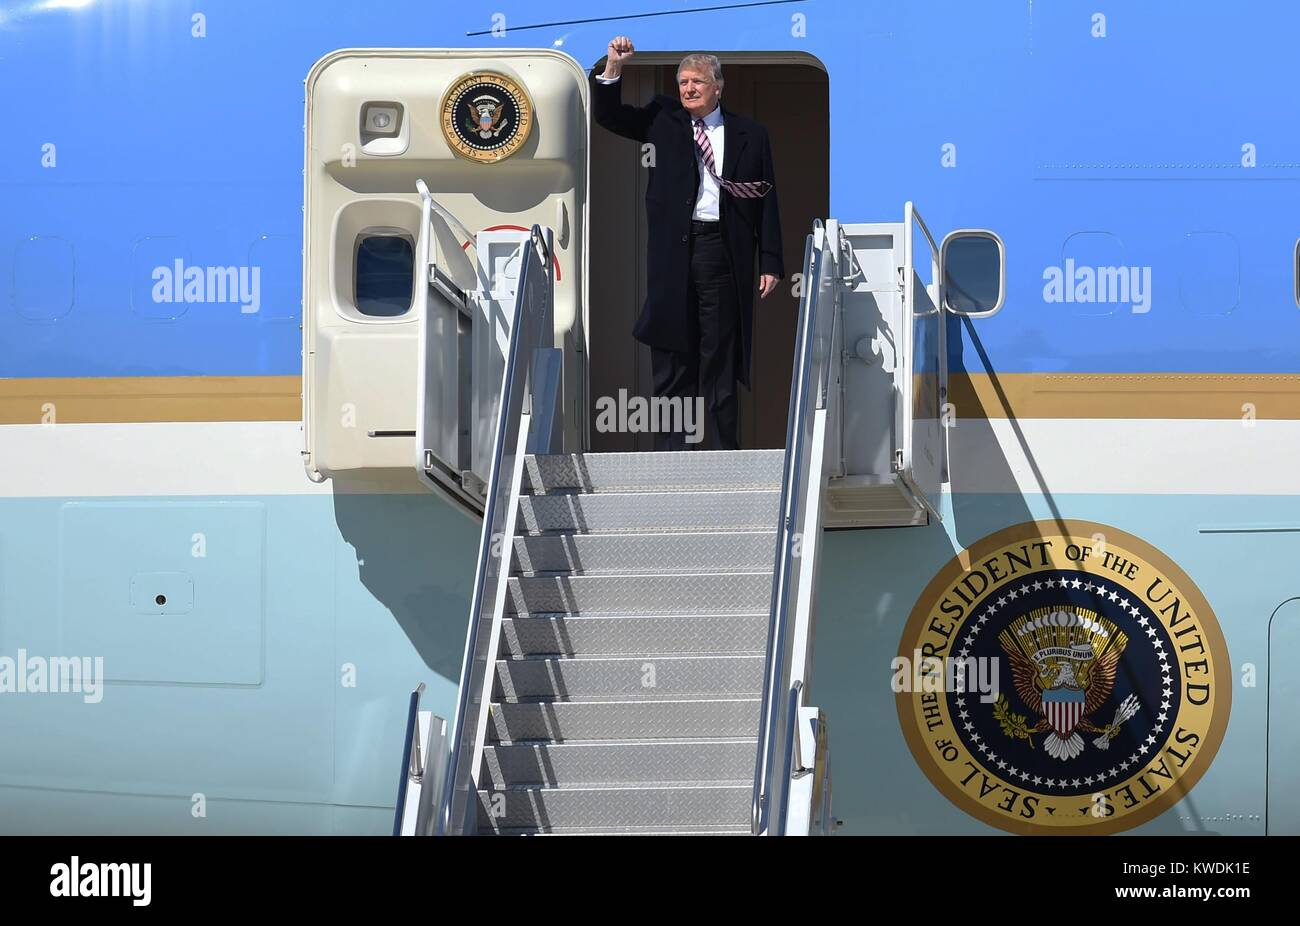 President Donald Trump gives a clenched fist salute from Air Force One, March 2, 2017. On arriving at Langley, VA, - Stock Image